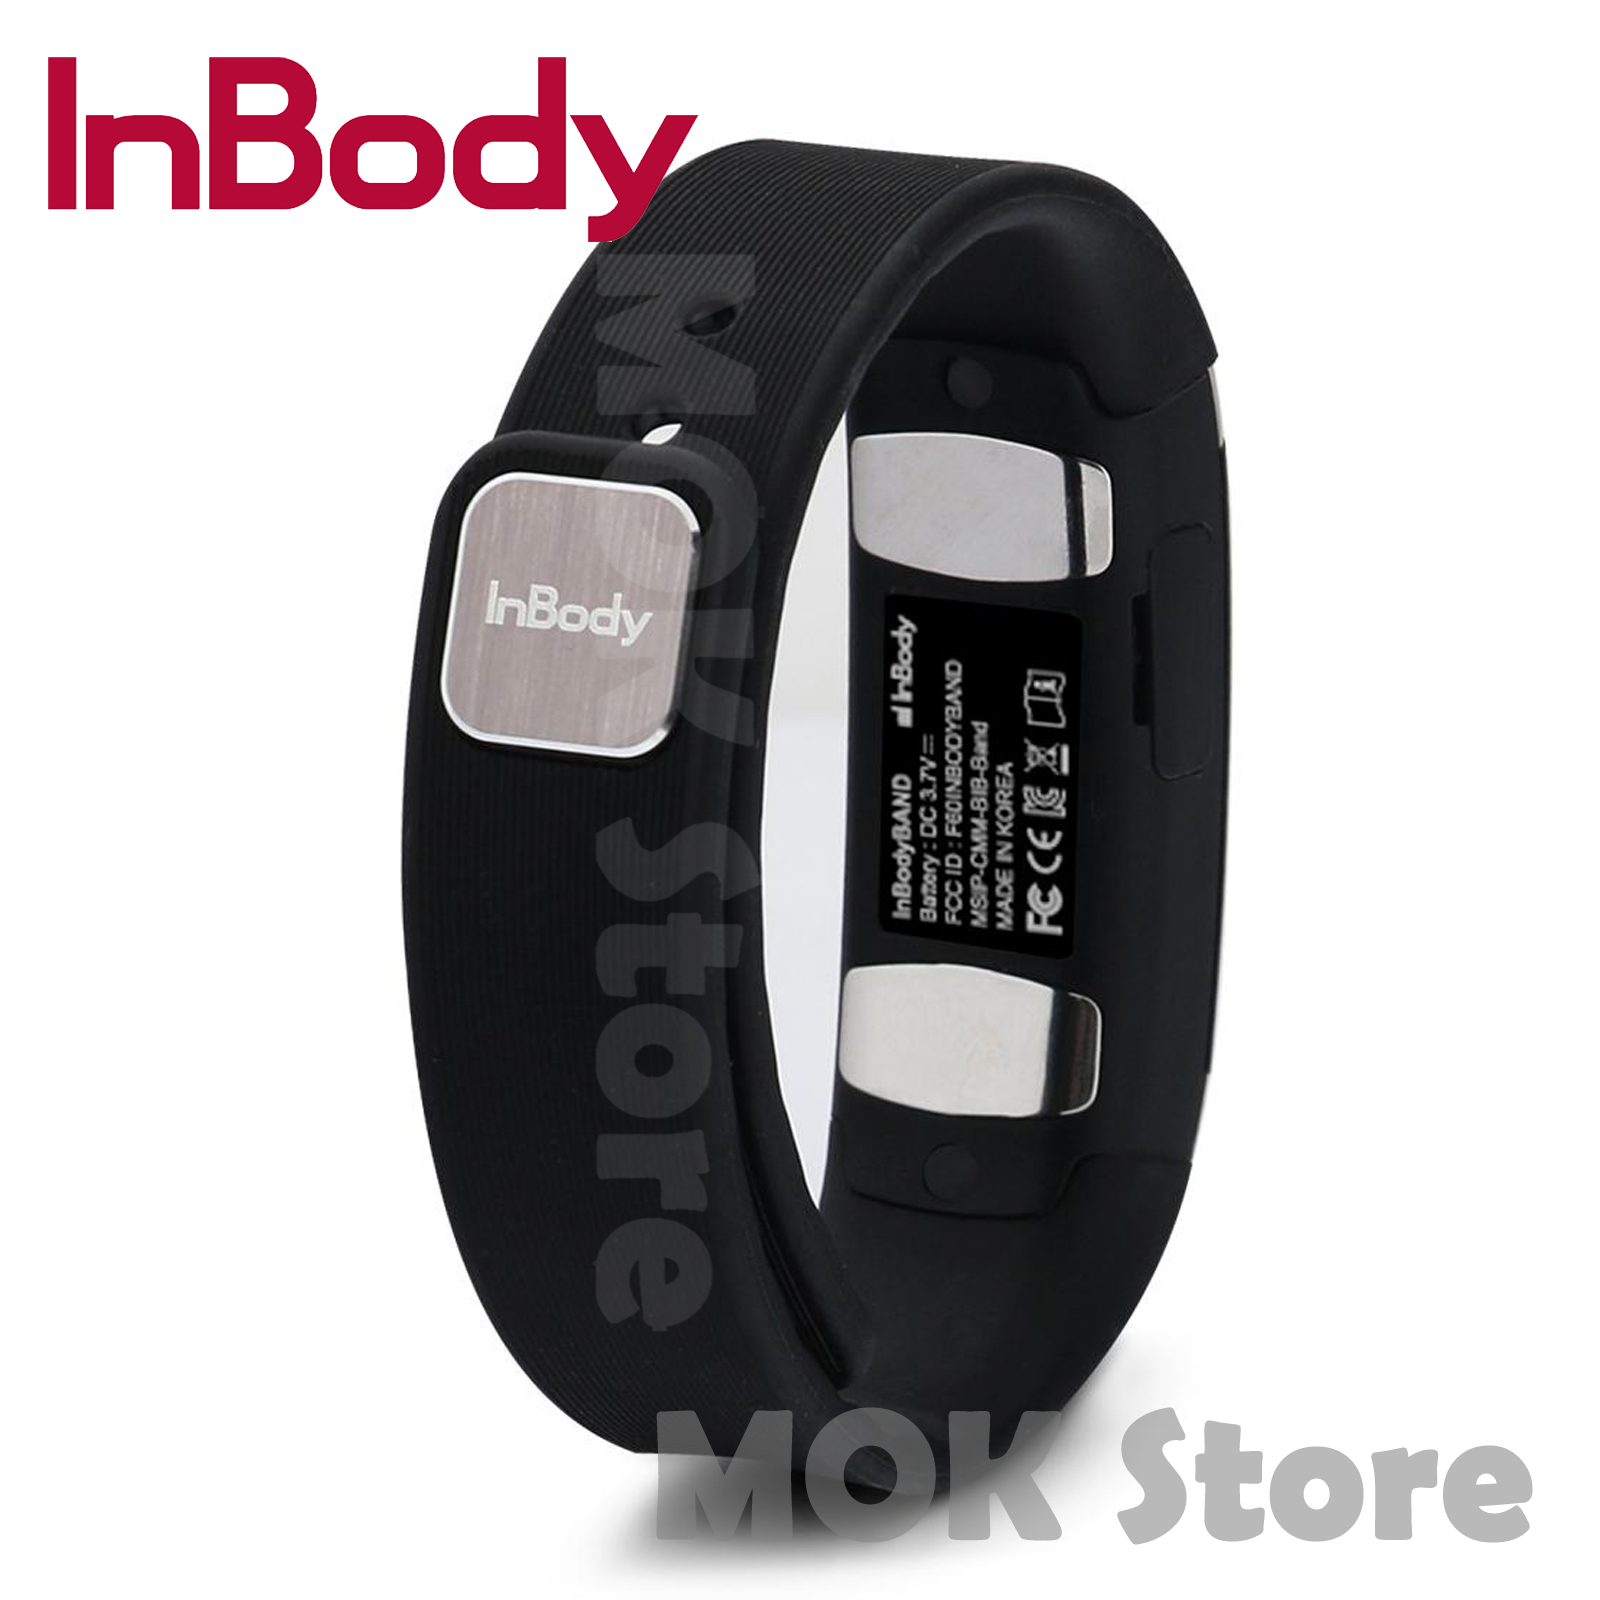 InBody Band Body Fat Fat Body on Diet & Health & Watch Wearable Smart Wrist Band S,M bb217a